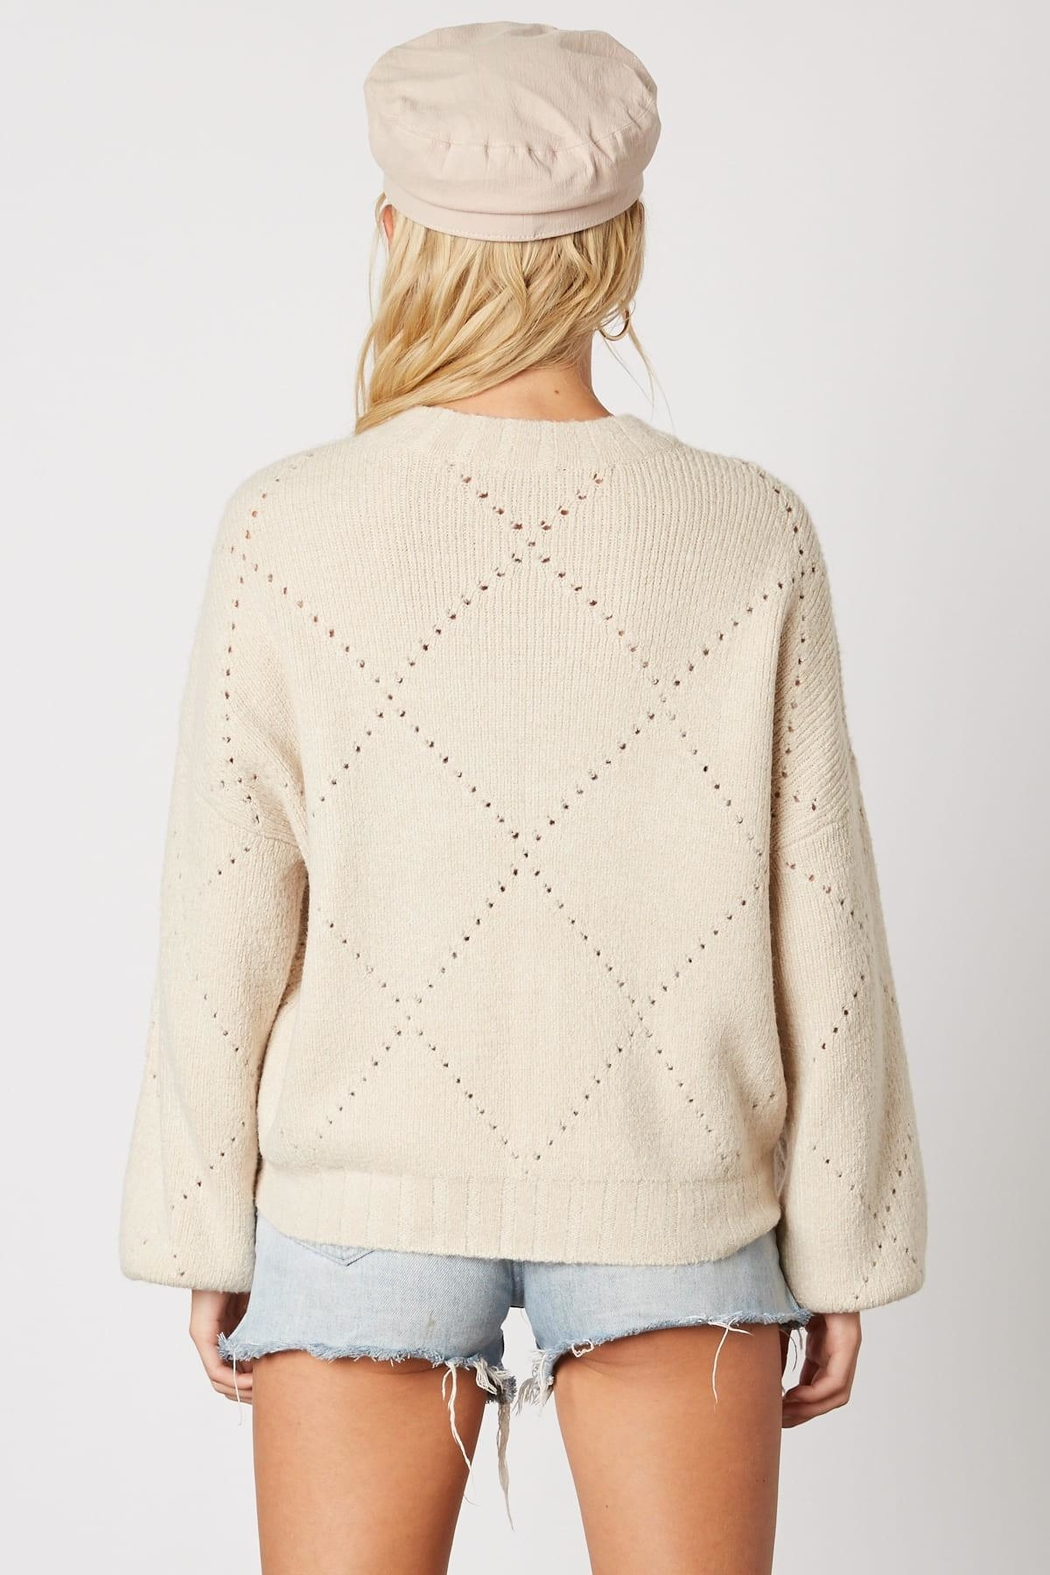 Cotton Candy LA Cream Pointelle Sweater - Back Cropped Image